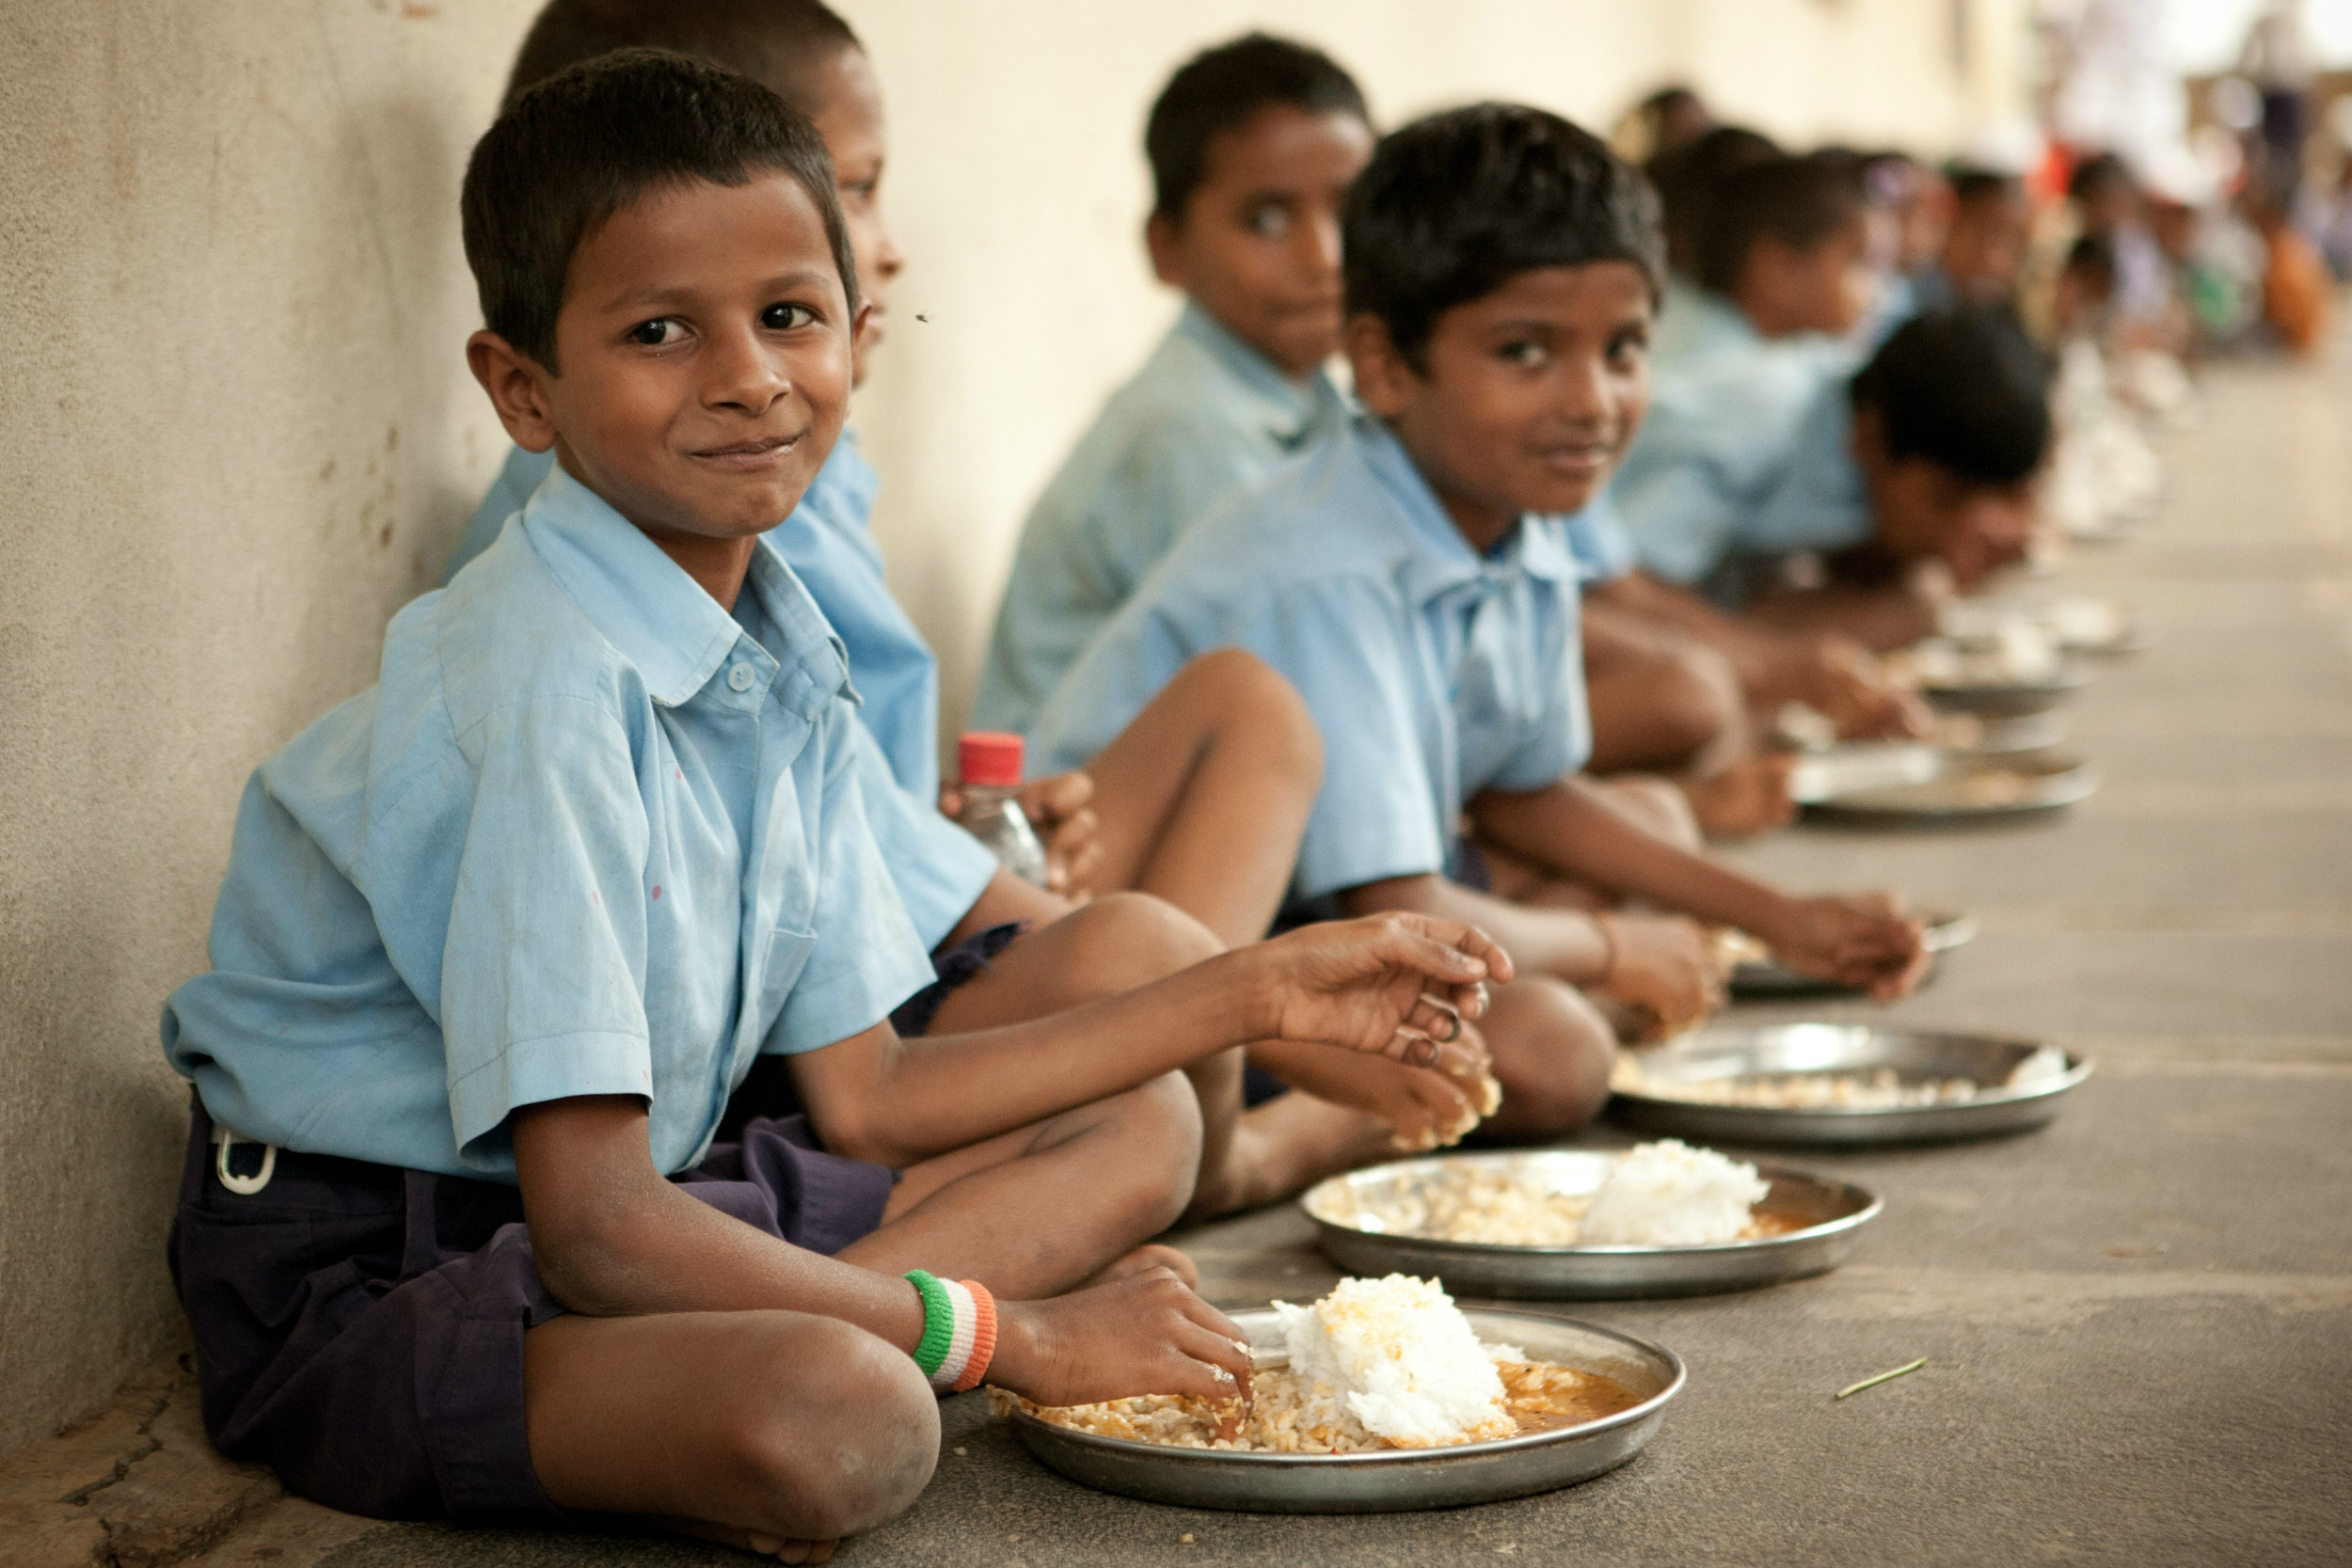 Akshaya Patra - In June, Kousalya Ranganathan applied for a gift to Akshaya Prata which helps provide meals to school children in India.